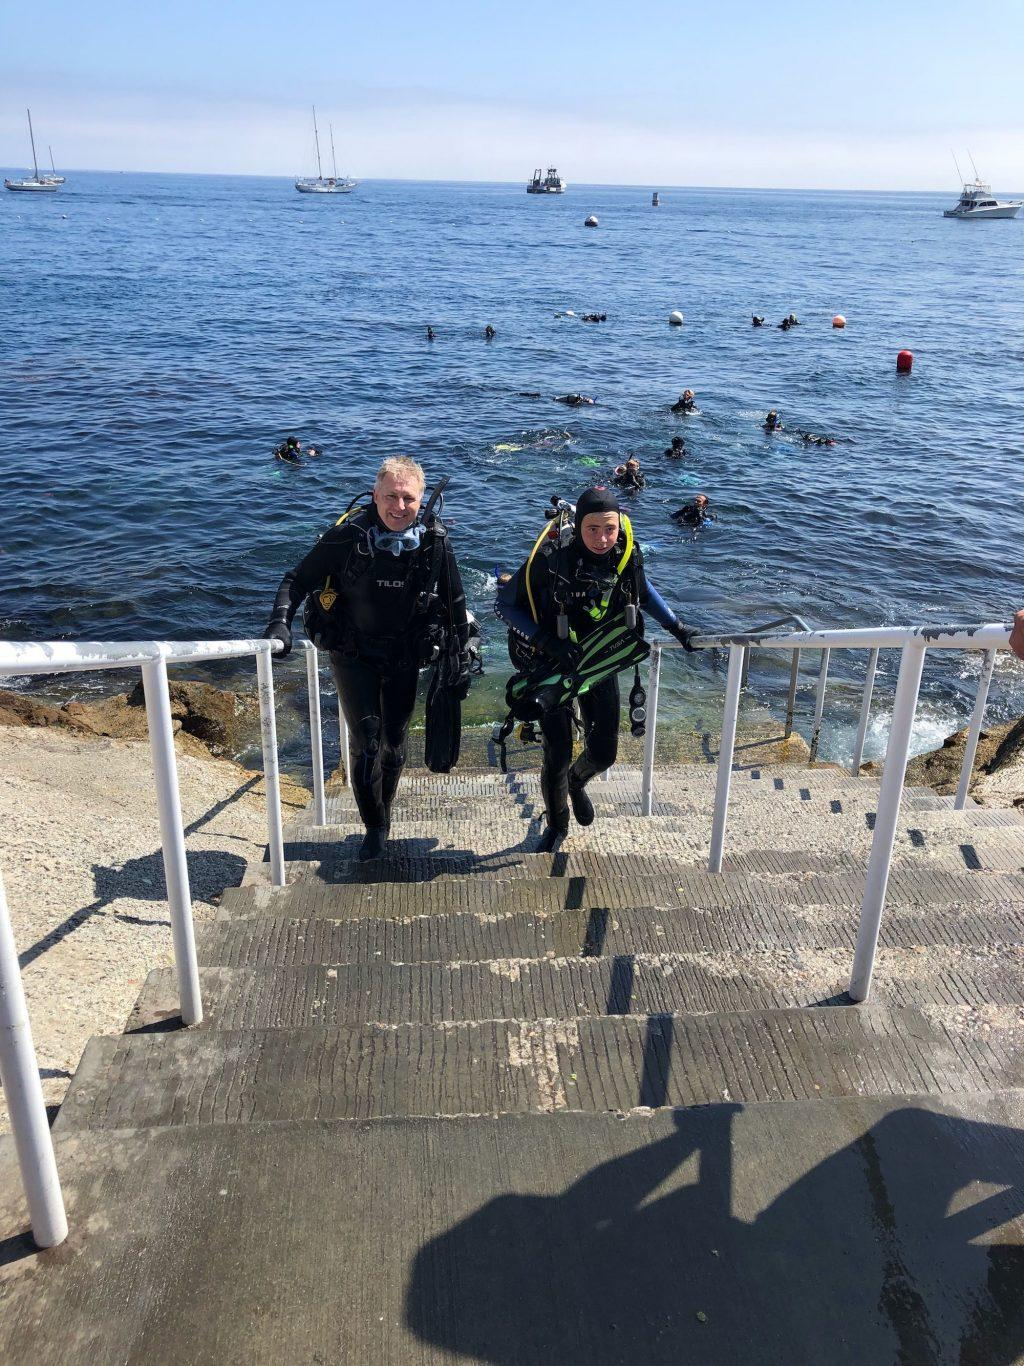 Ishak walks up stairs after scuba diving with friends at Santa Catalina Island, California. He earned his advanced scuba driver certification in 2016.